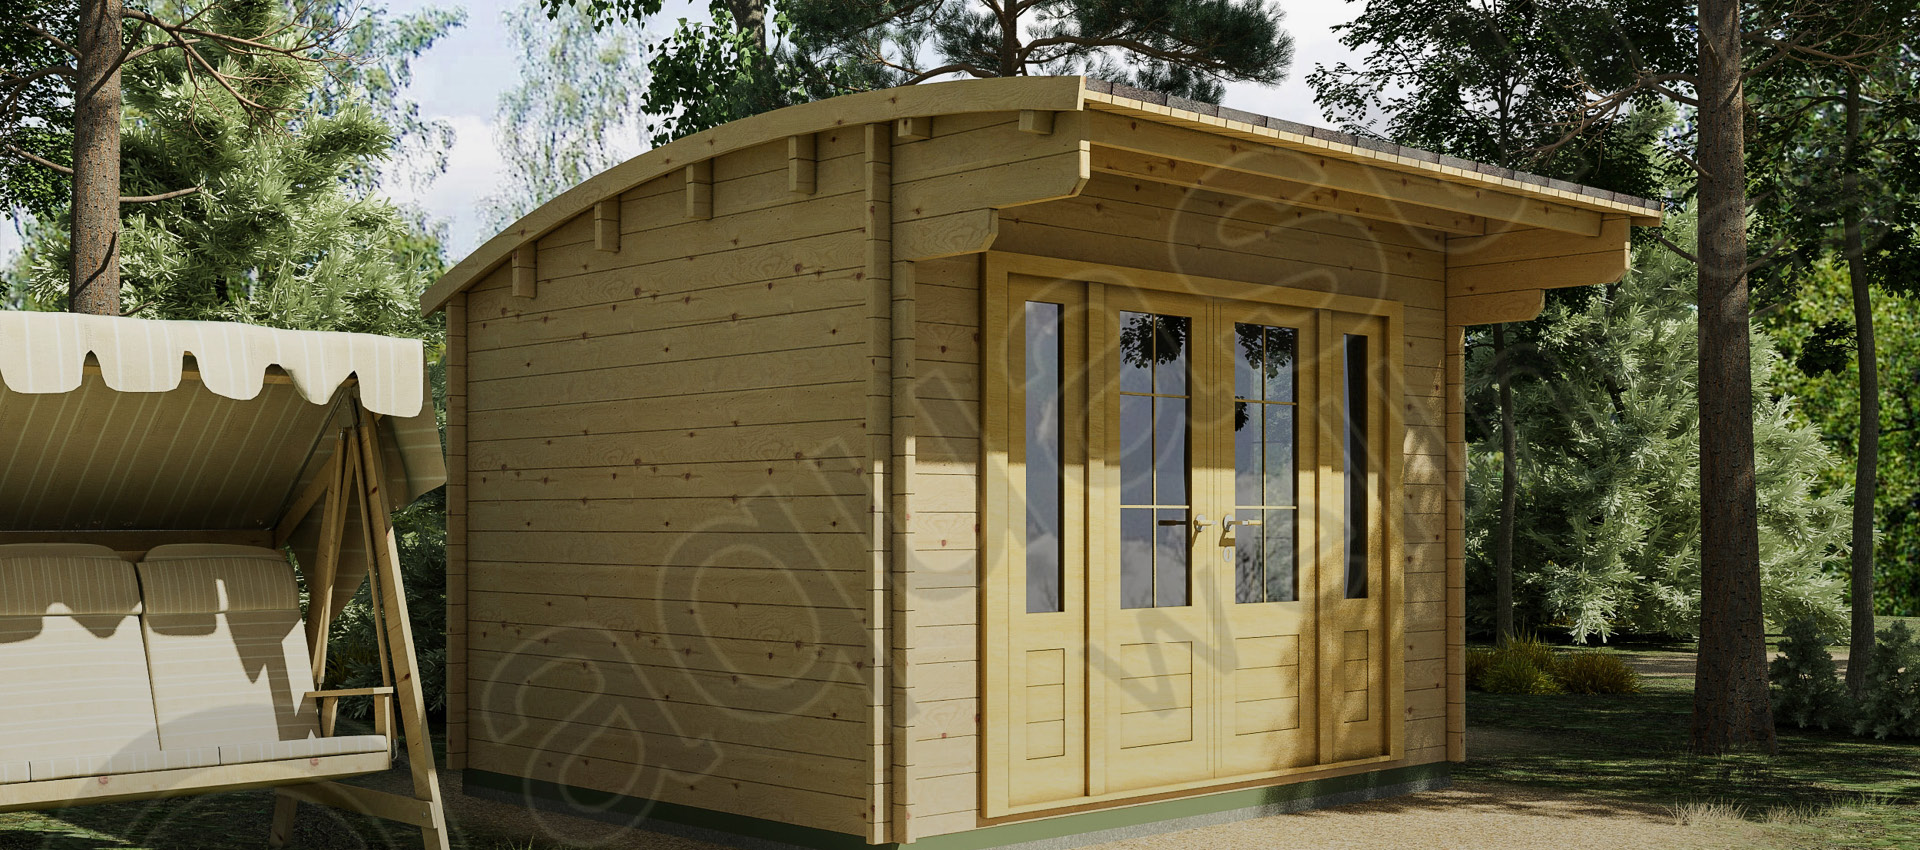 Curved roof 3x3.5m